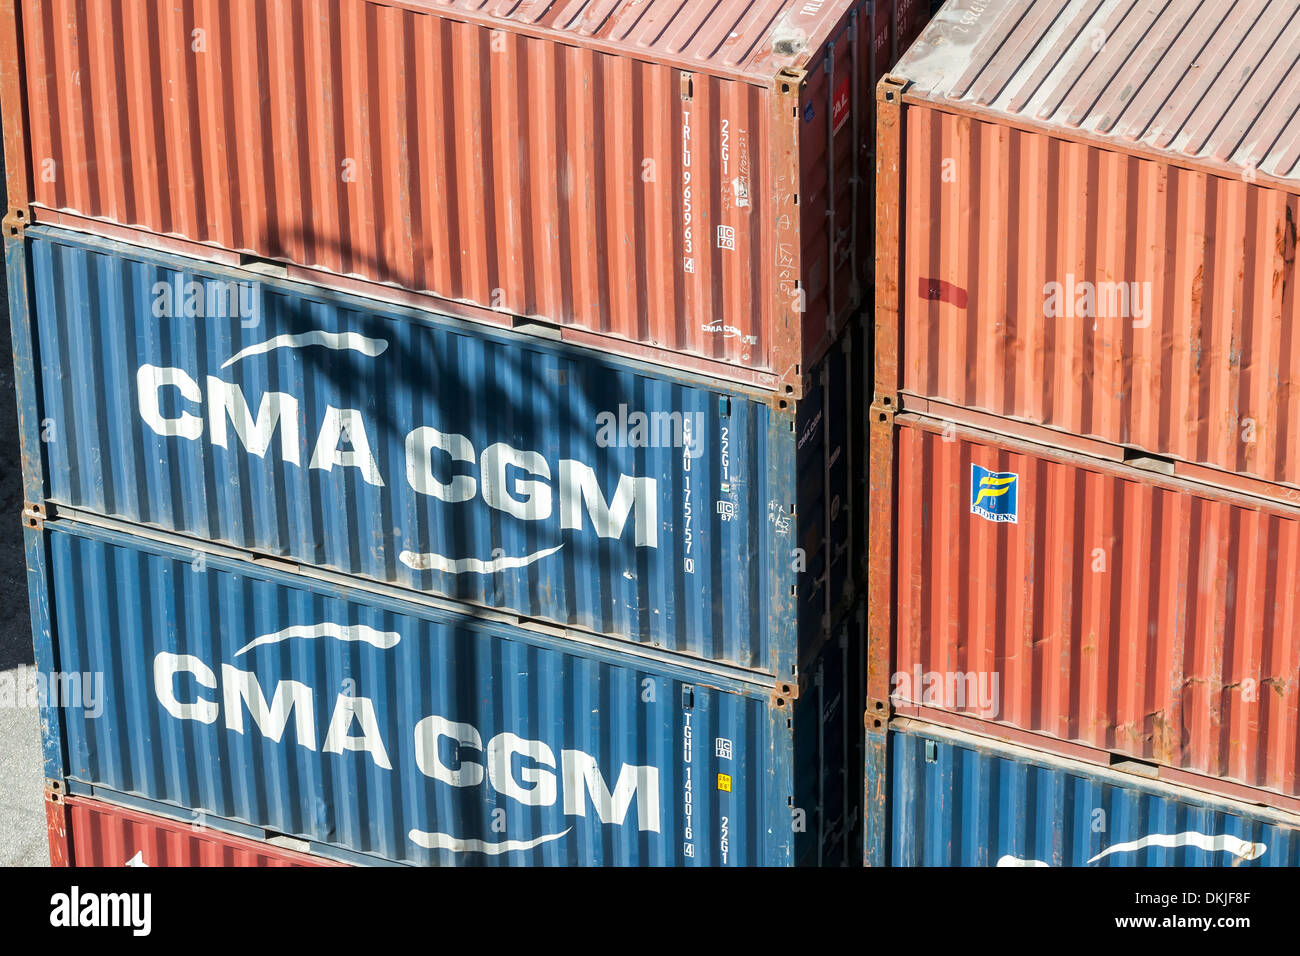 Shipping Container at the Dock - CMA CGM - Stock Image